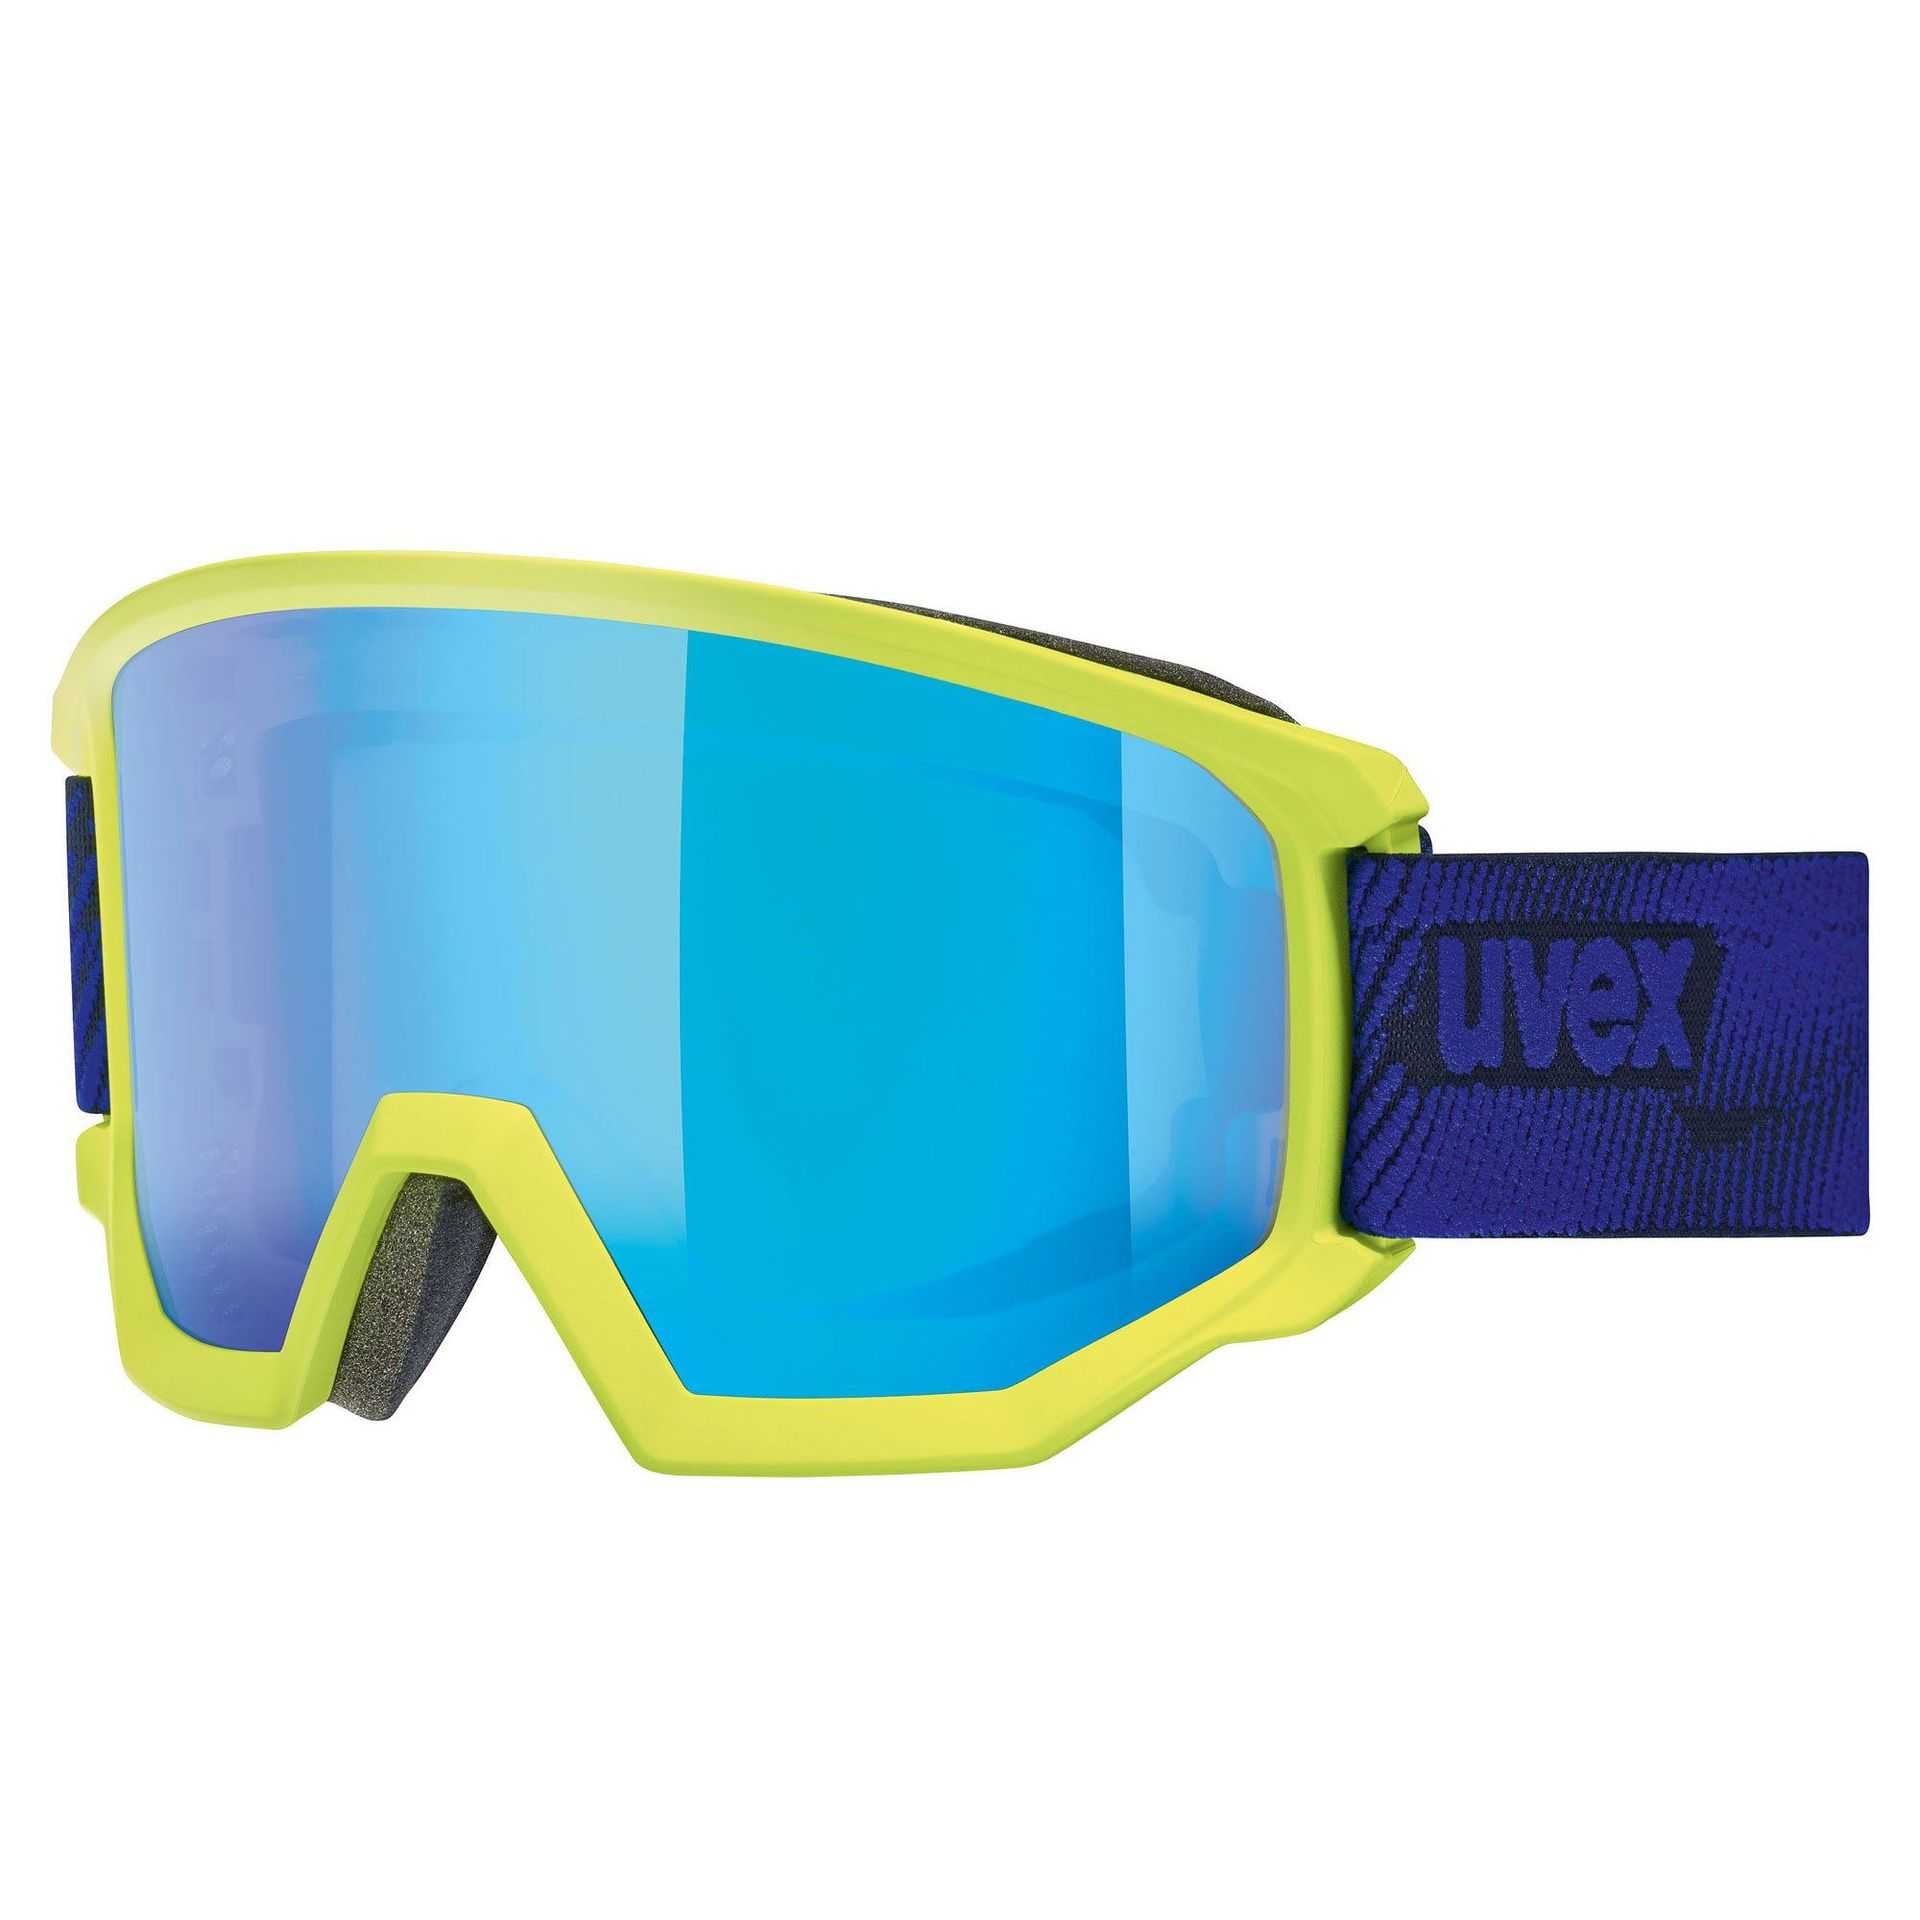 GOGLE UVEX ATHLETIC CV LIME INDYGO MAT|MIRROR BLUE COLORVISION GREEN 55|0|527|7030